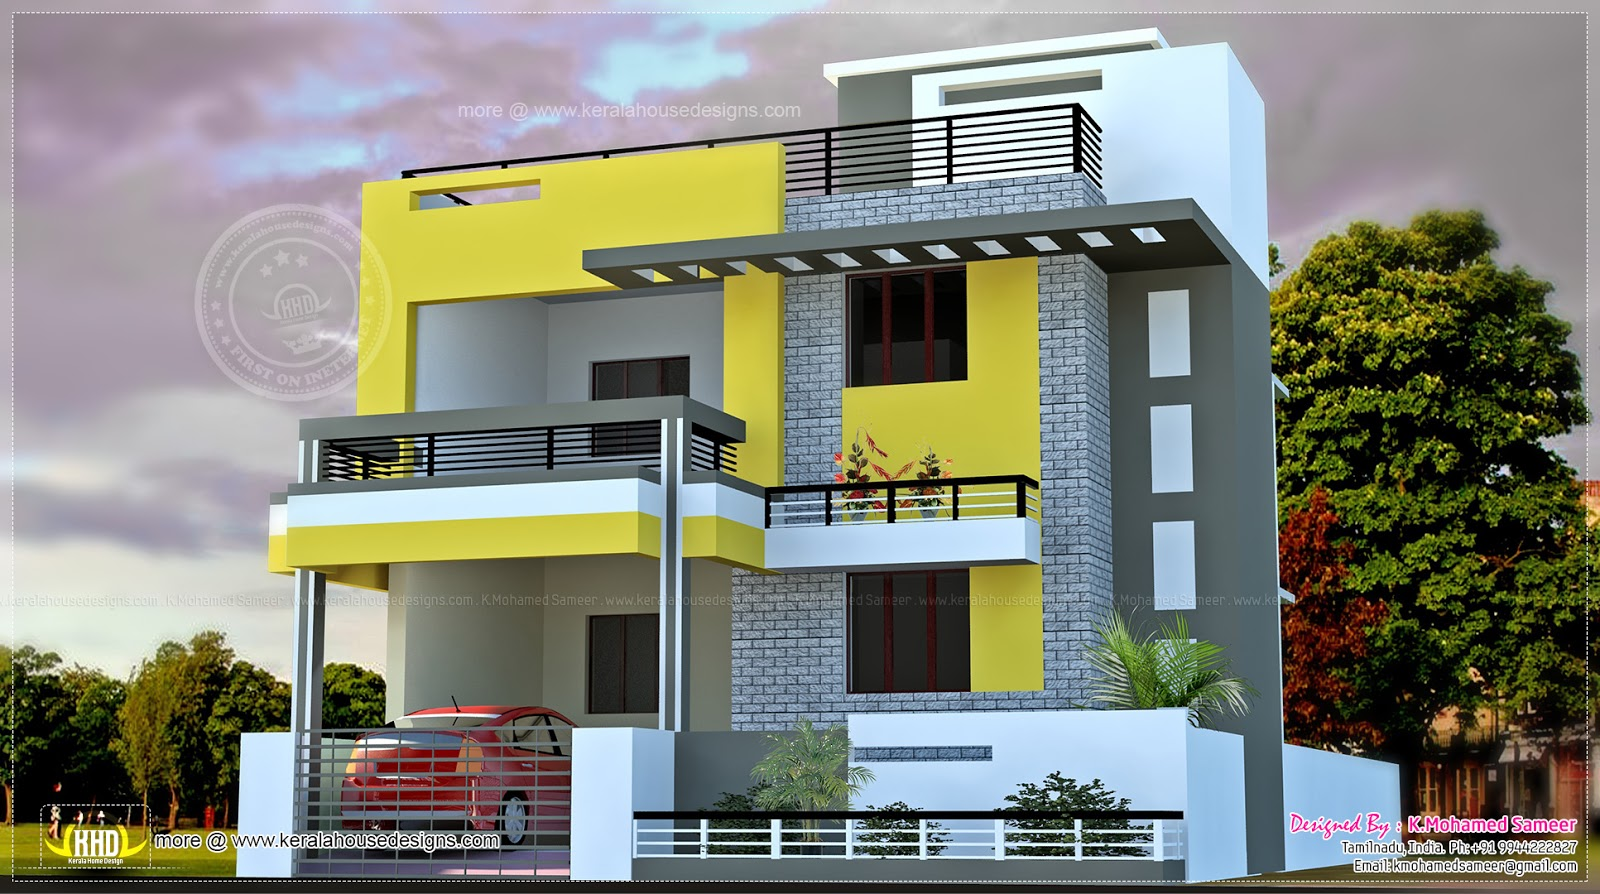 June 2013 kerala home design and floor plans Good house designs in india